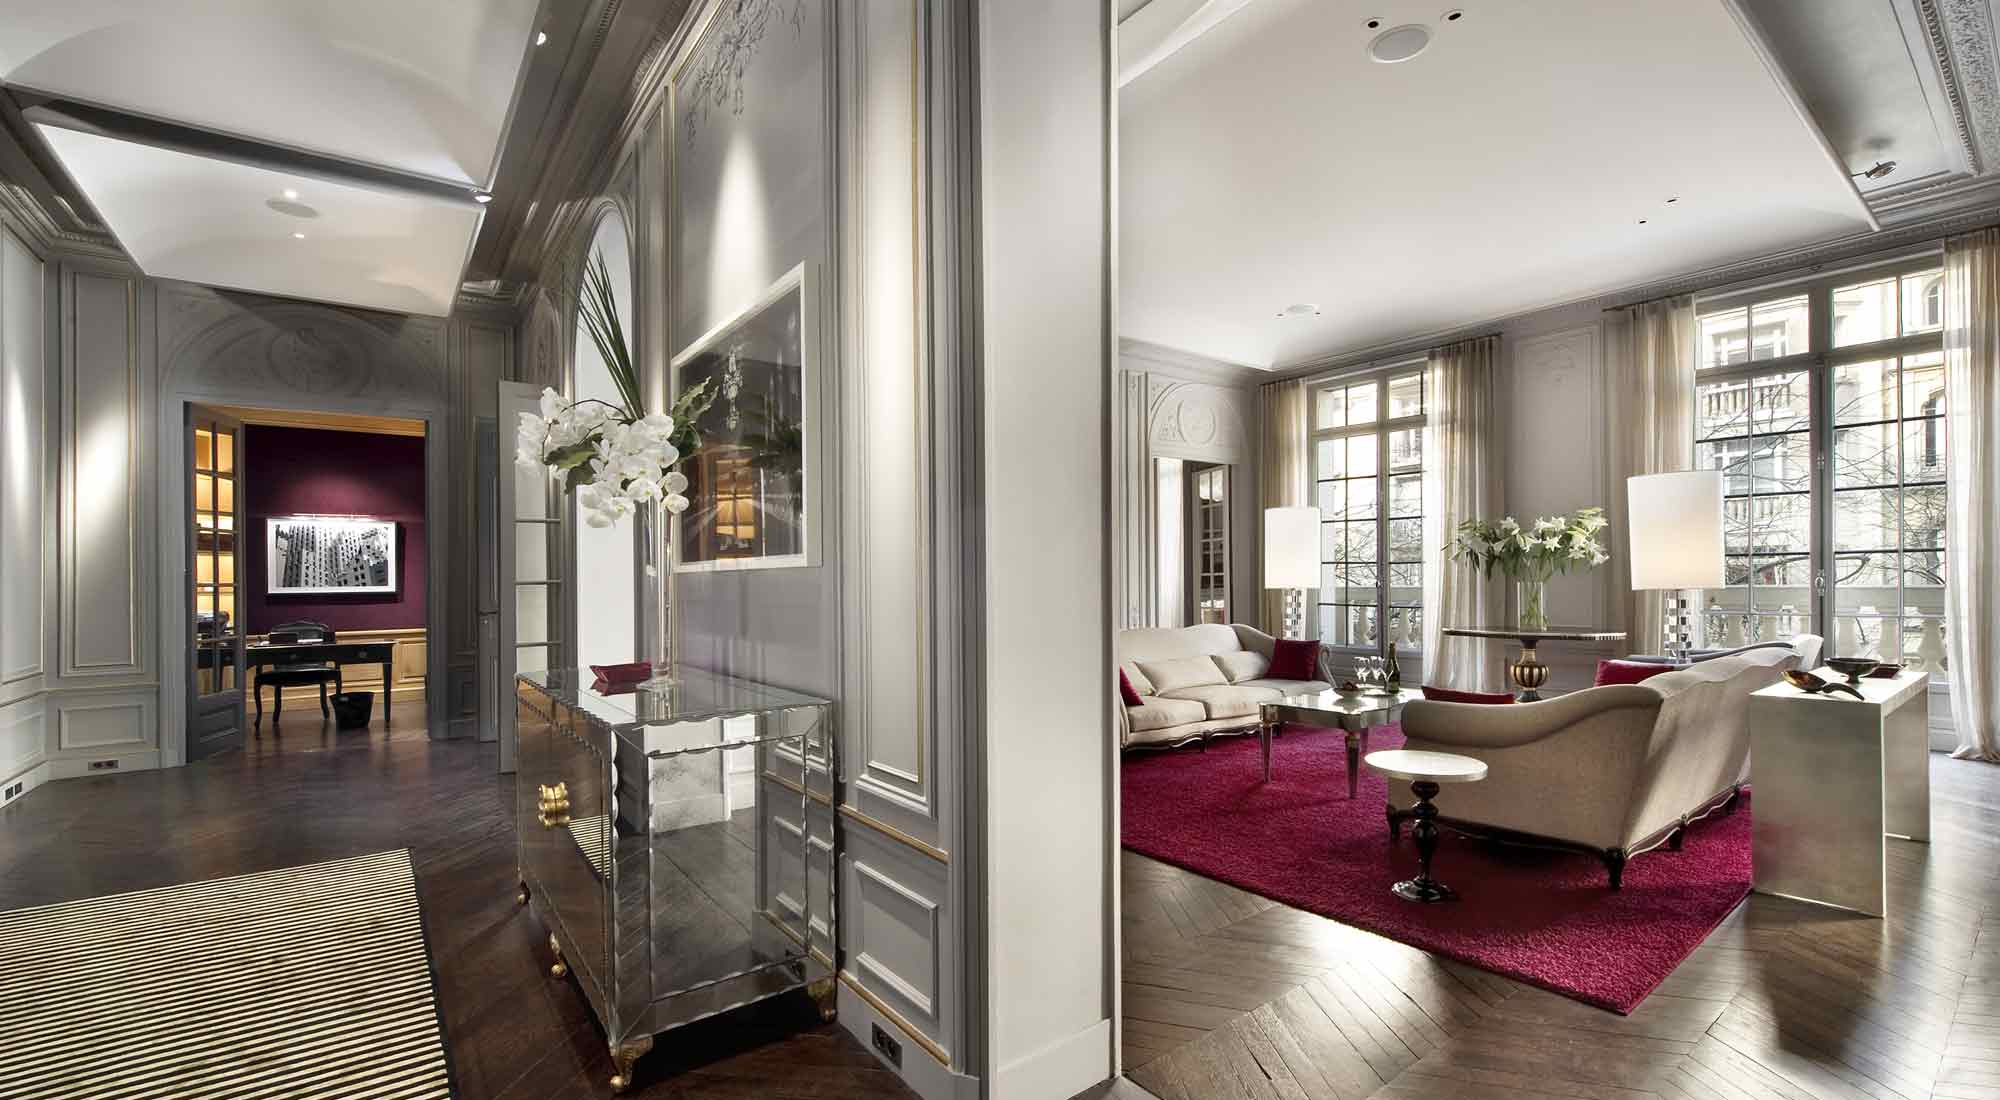 Paris luxury apartment for rent 16th casol villas france for Hotel luxe france